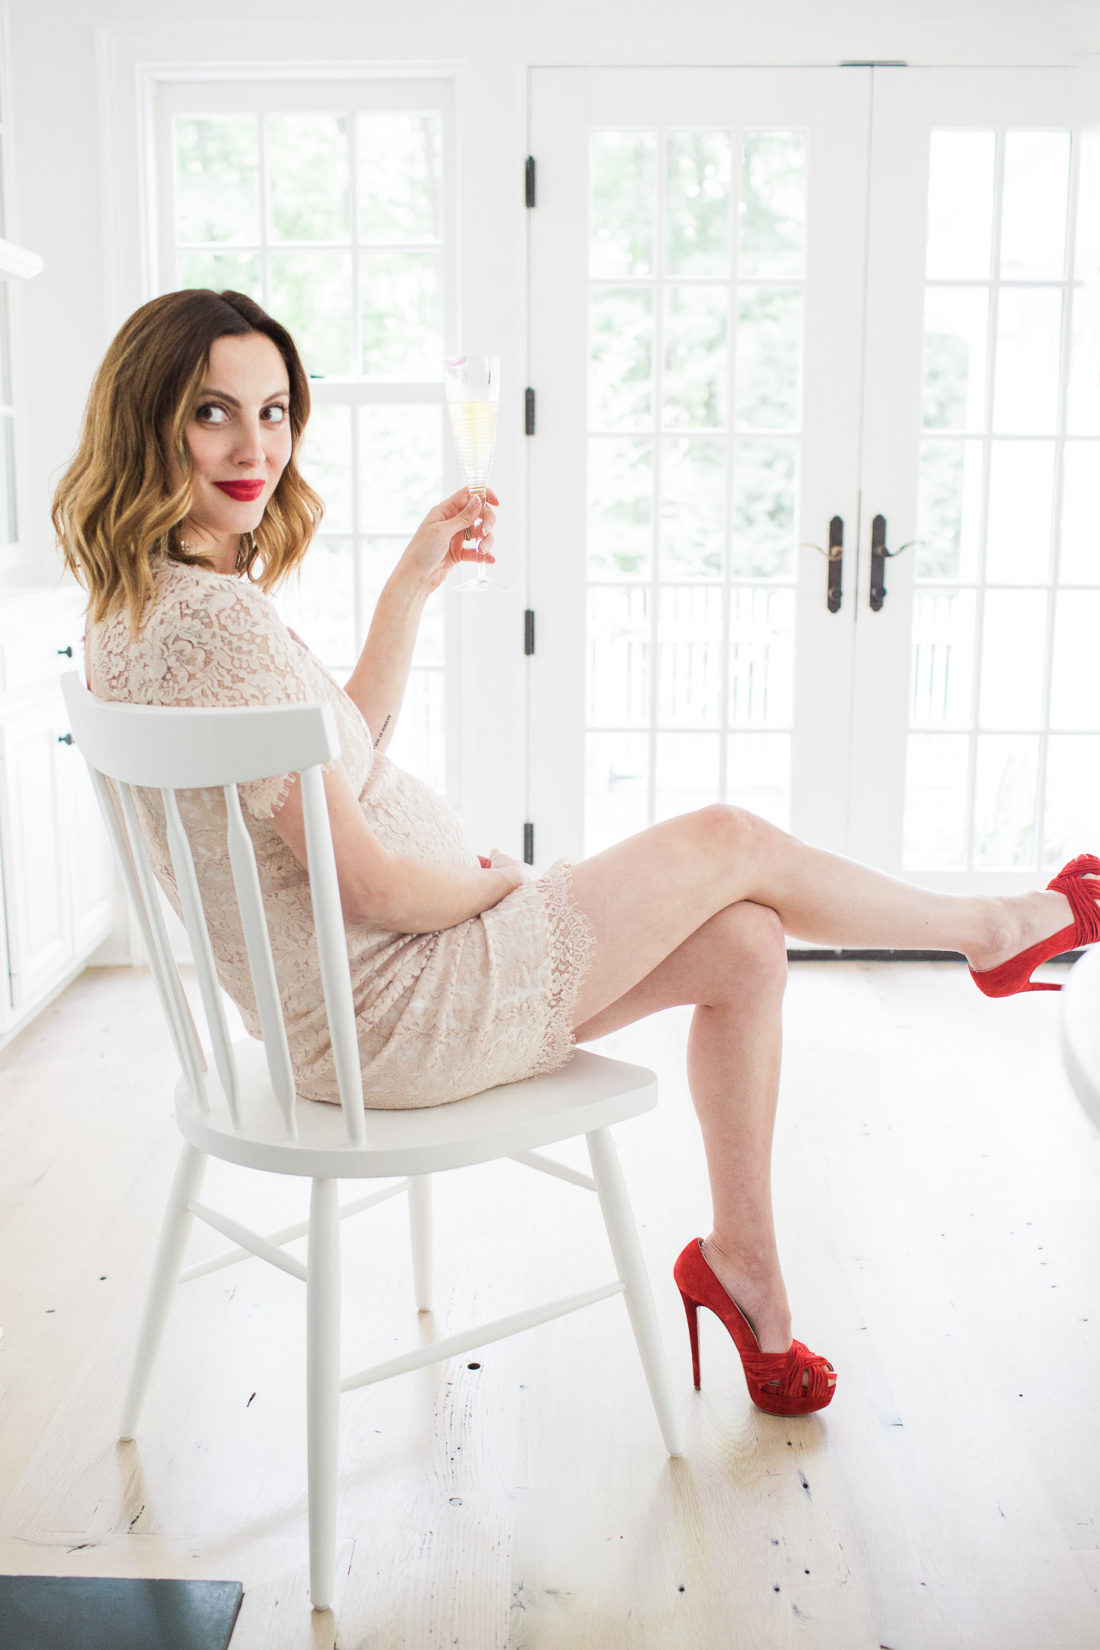 Eva Amurri Martino of lifestyle and Motherhood blog Happily Eva After dressed in a champagne lace maternity dress, red suede Louboutin pumps, and red lipstick, reclining in a white chair and holding a glass of sparkling cider at 37 weeks pregnant